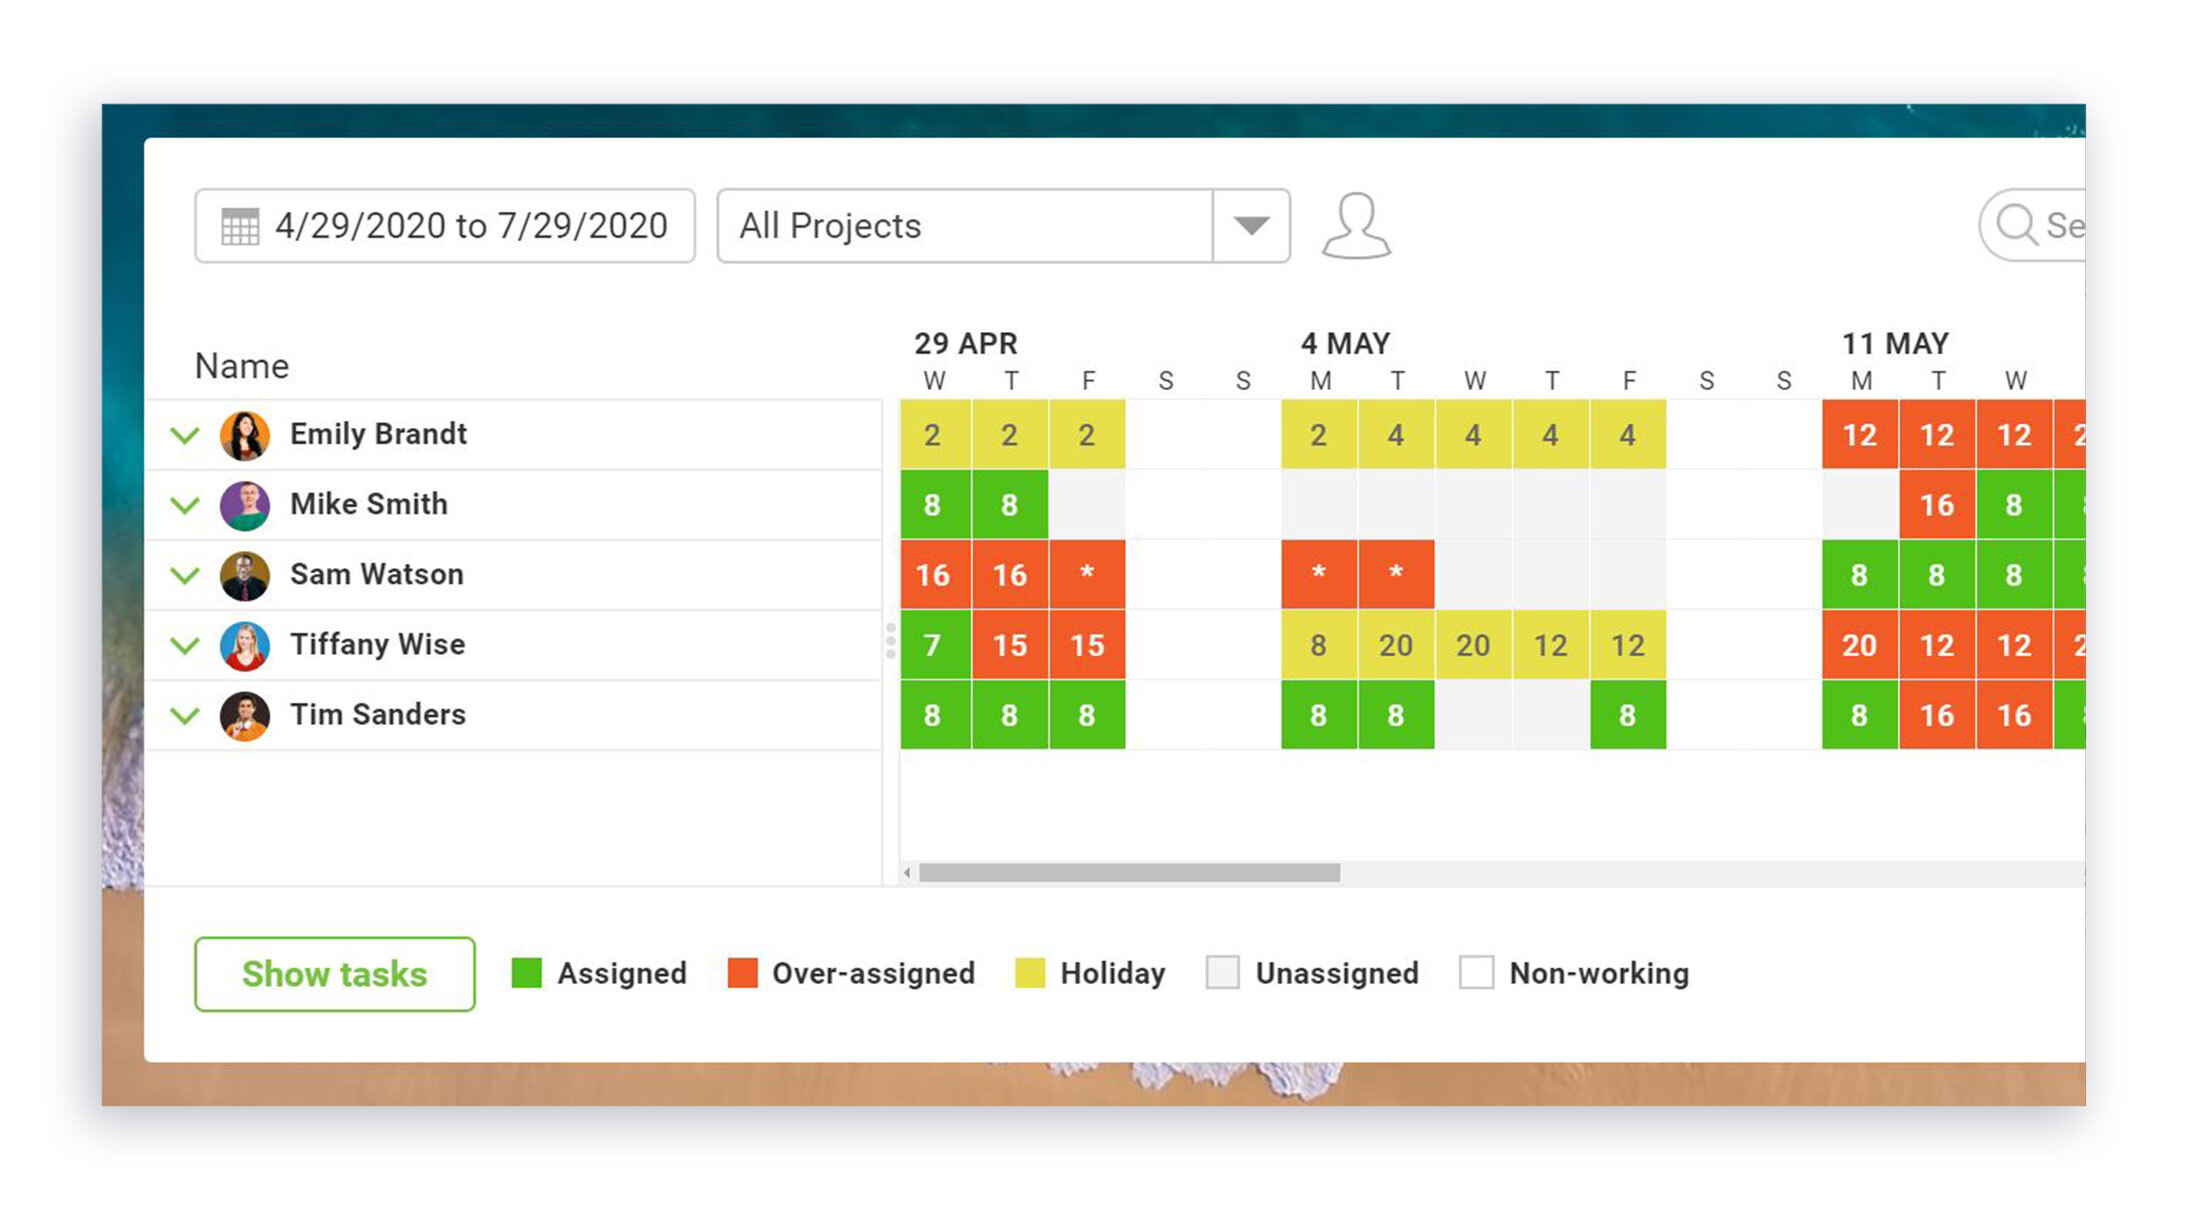 workload allocation for a production schedule